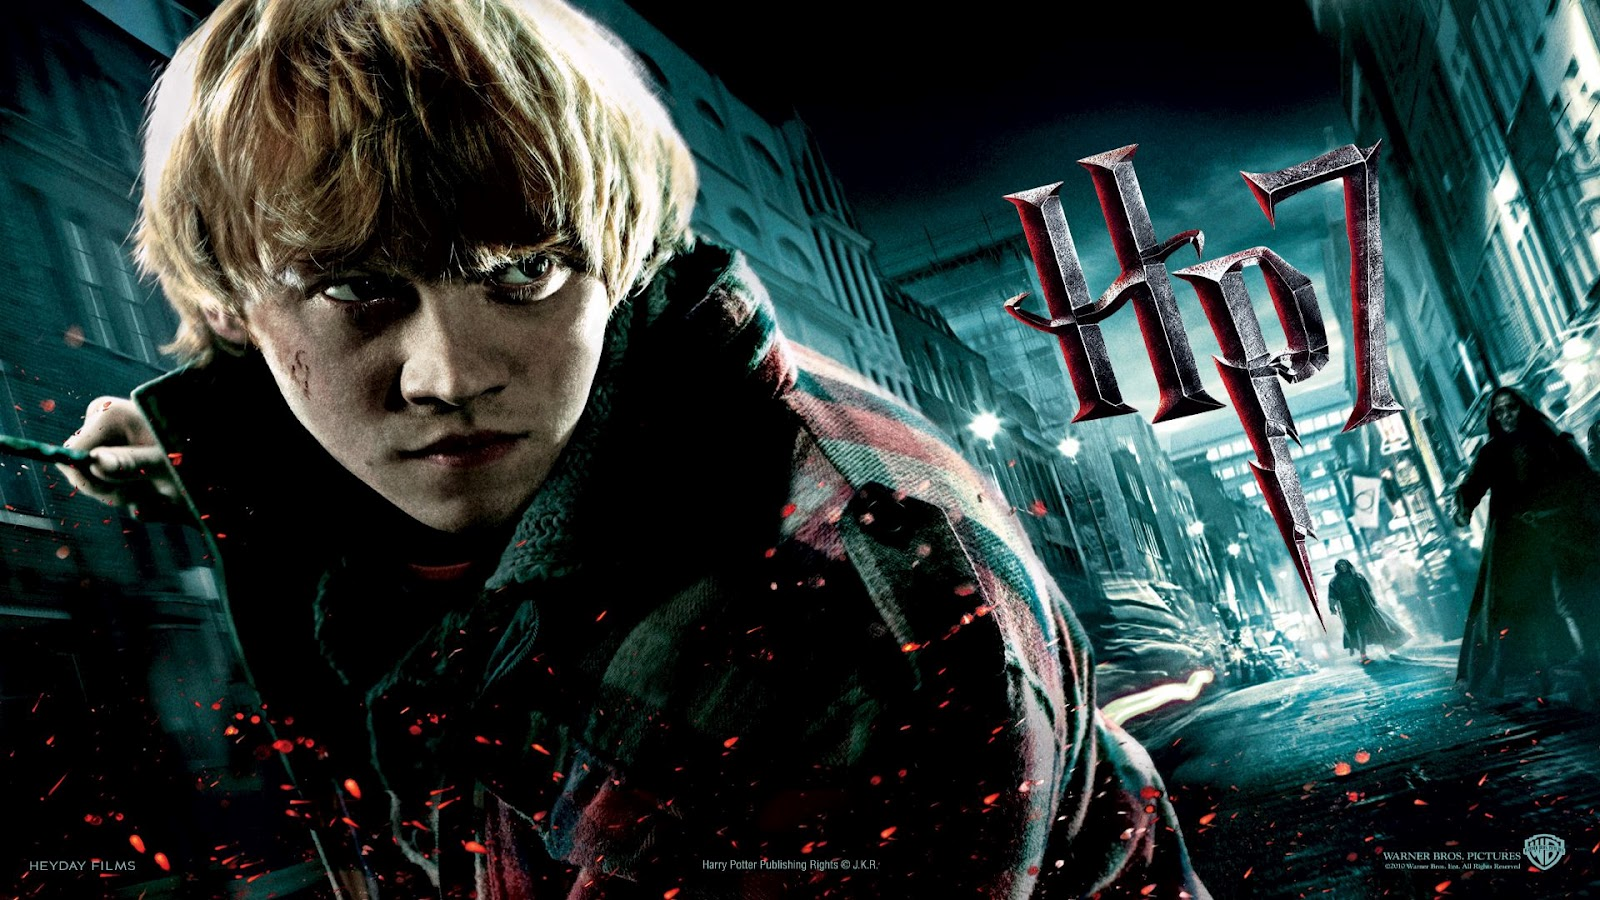 http://3.bp.blogspot.com/-Jrm6swOfyKo/UBHzOn9pySI/AAAAAAAACt4/_enCJOwQEY0/s1600/rupert-grint-in-harry-potter-and-the-deathly-hallows-part-i-wallpaper-20_1920x1080_88269.jpg